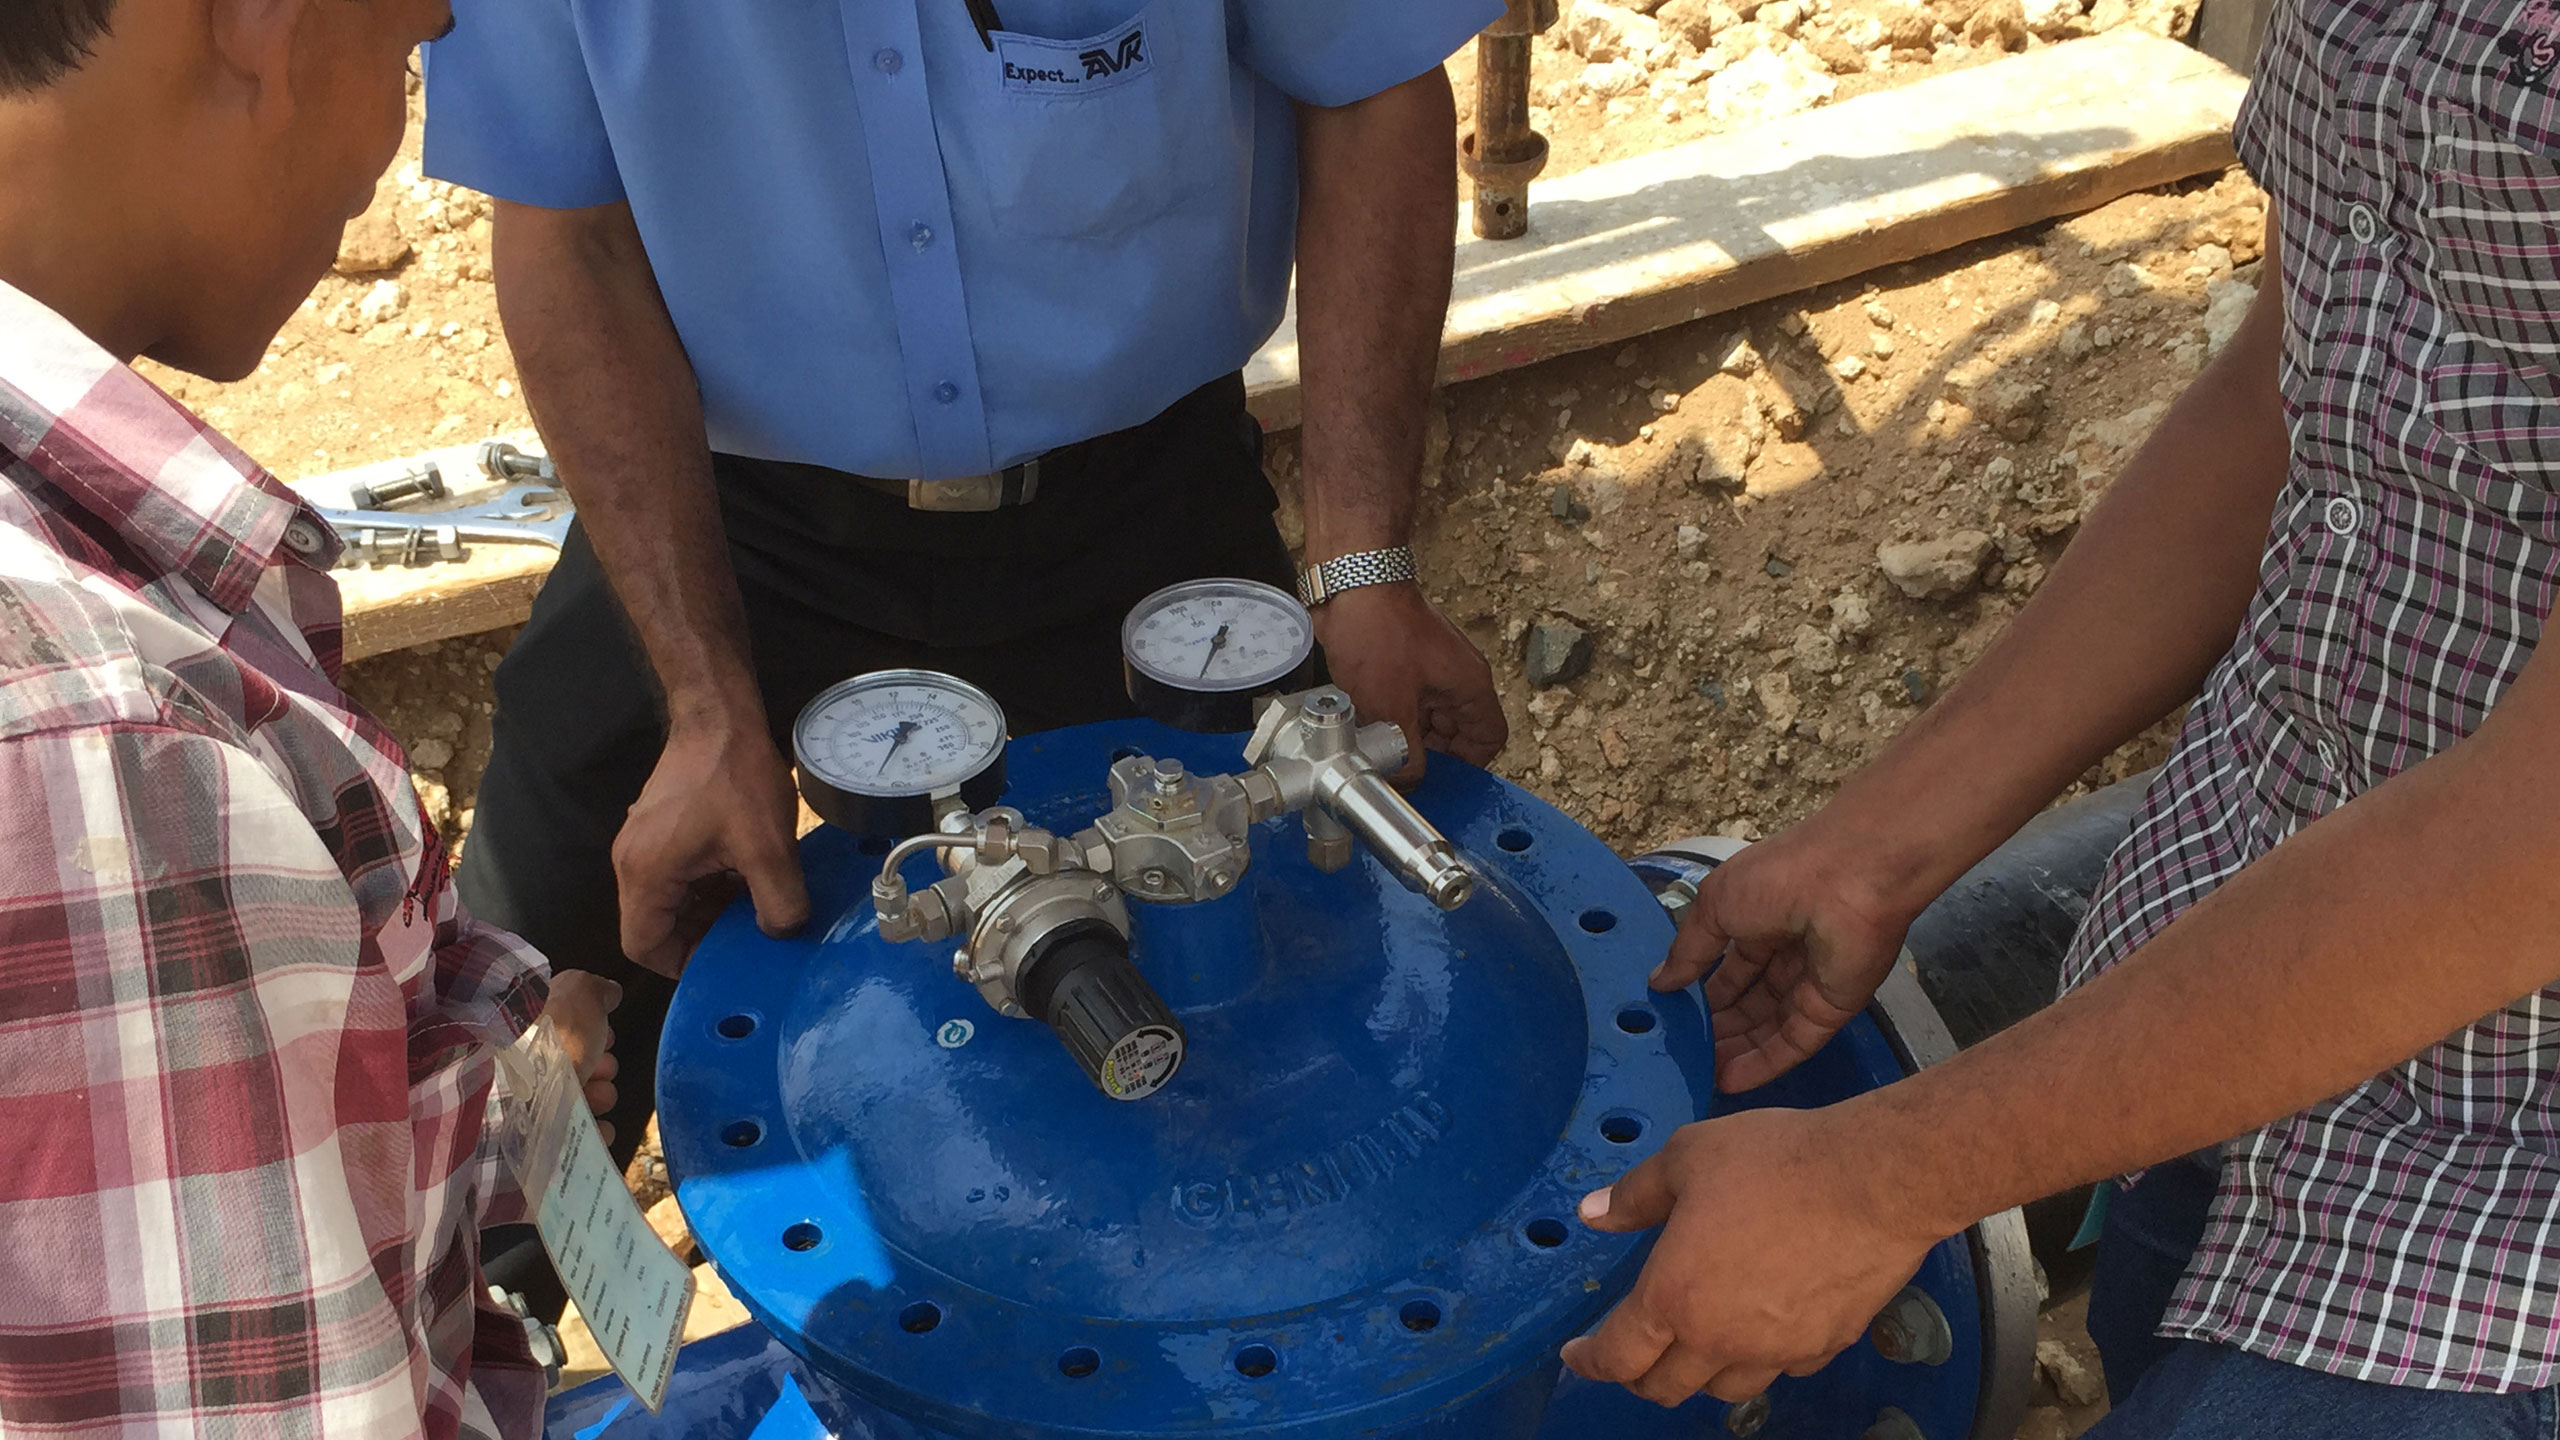 Installation of control valve